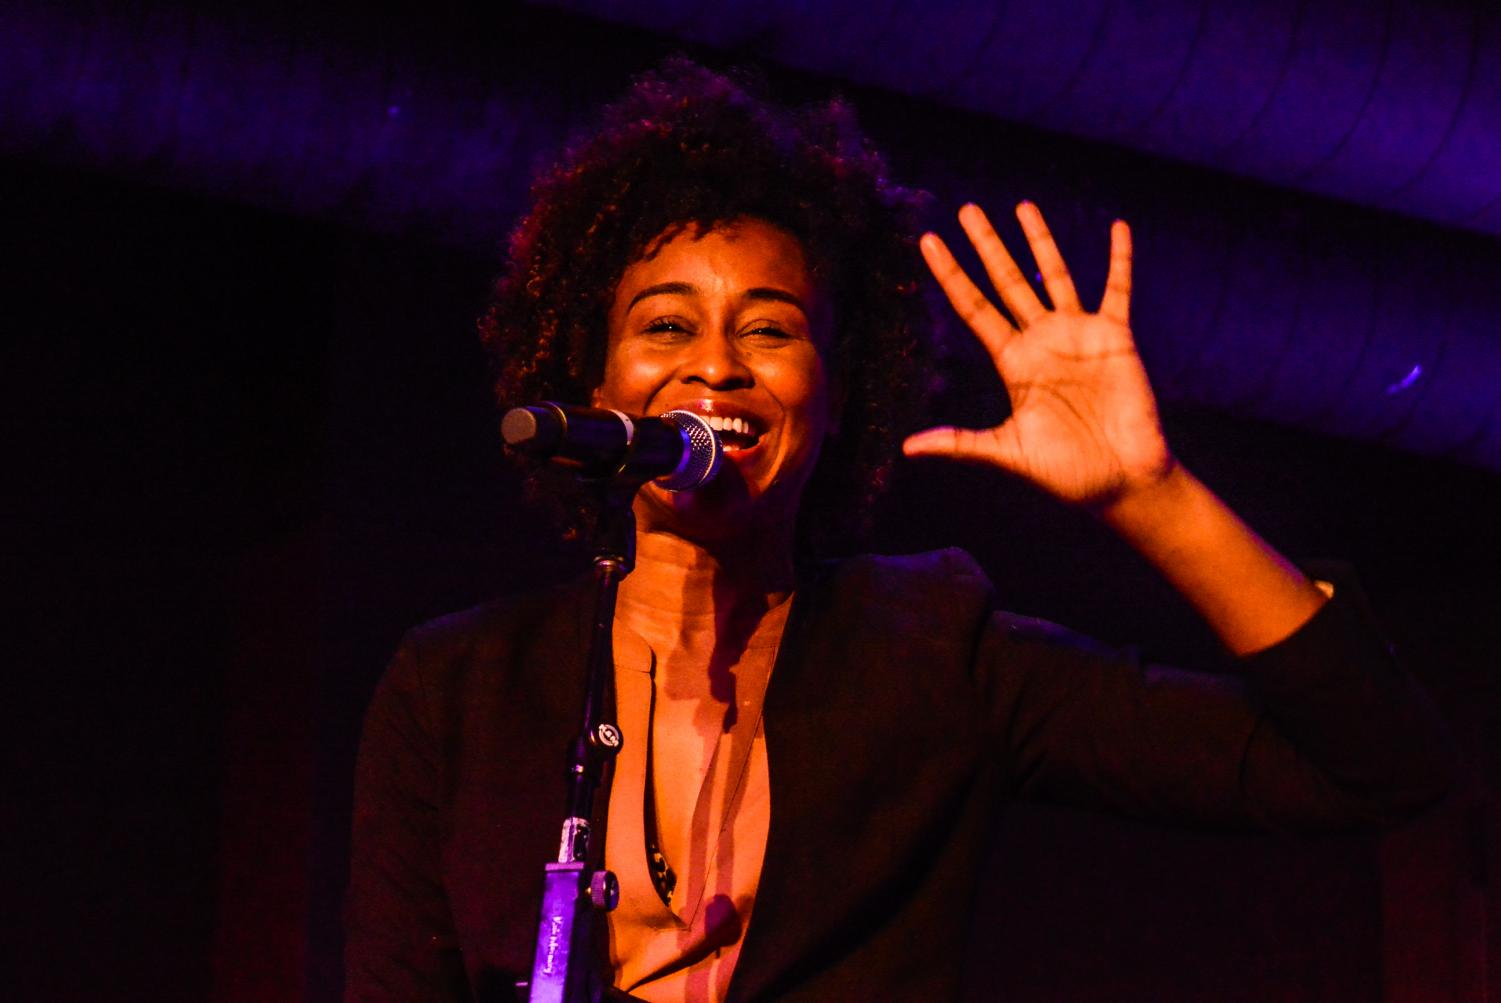 Poet Kyla Lacey performs her work on Feb. 22 at the Down Under in the University Center.